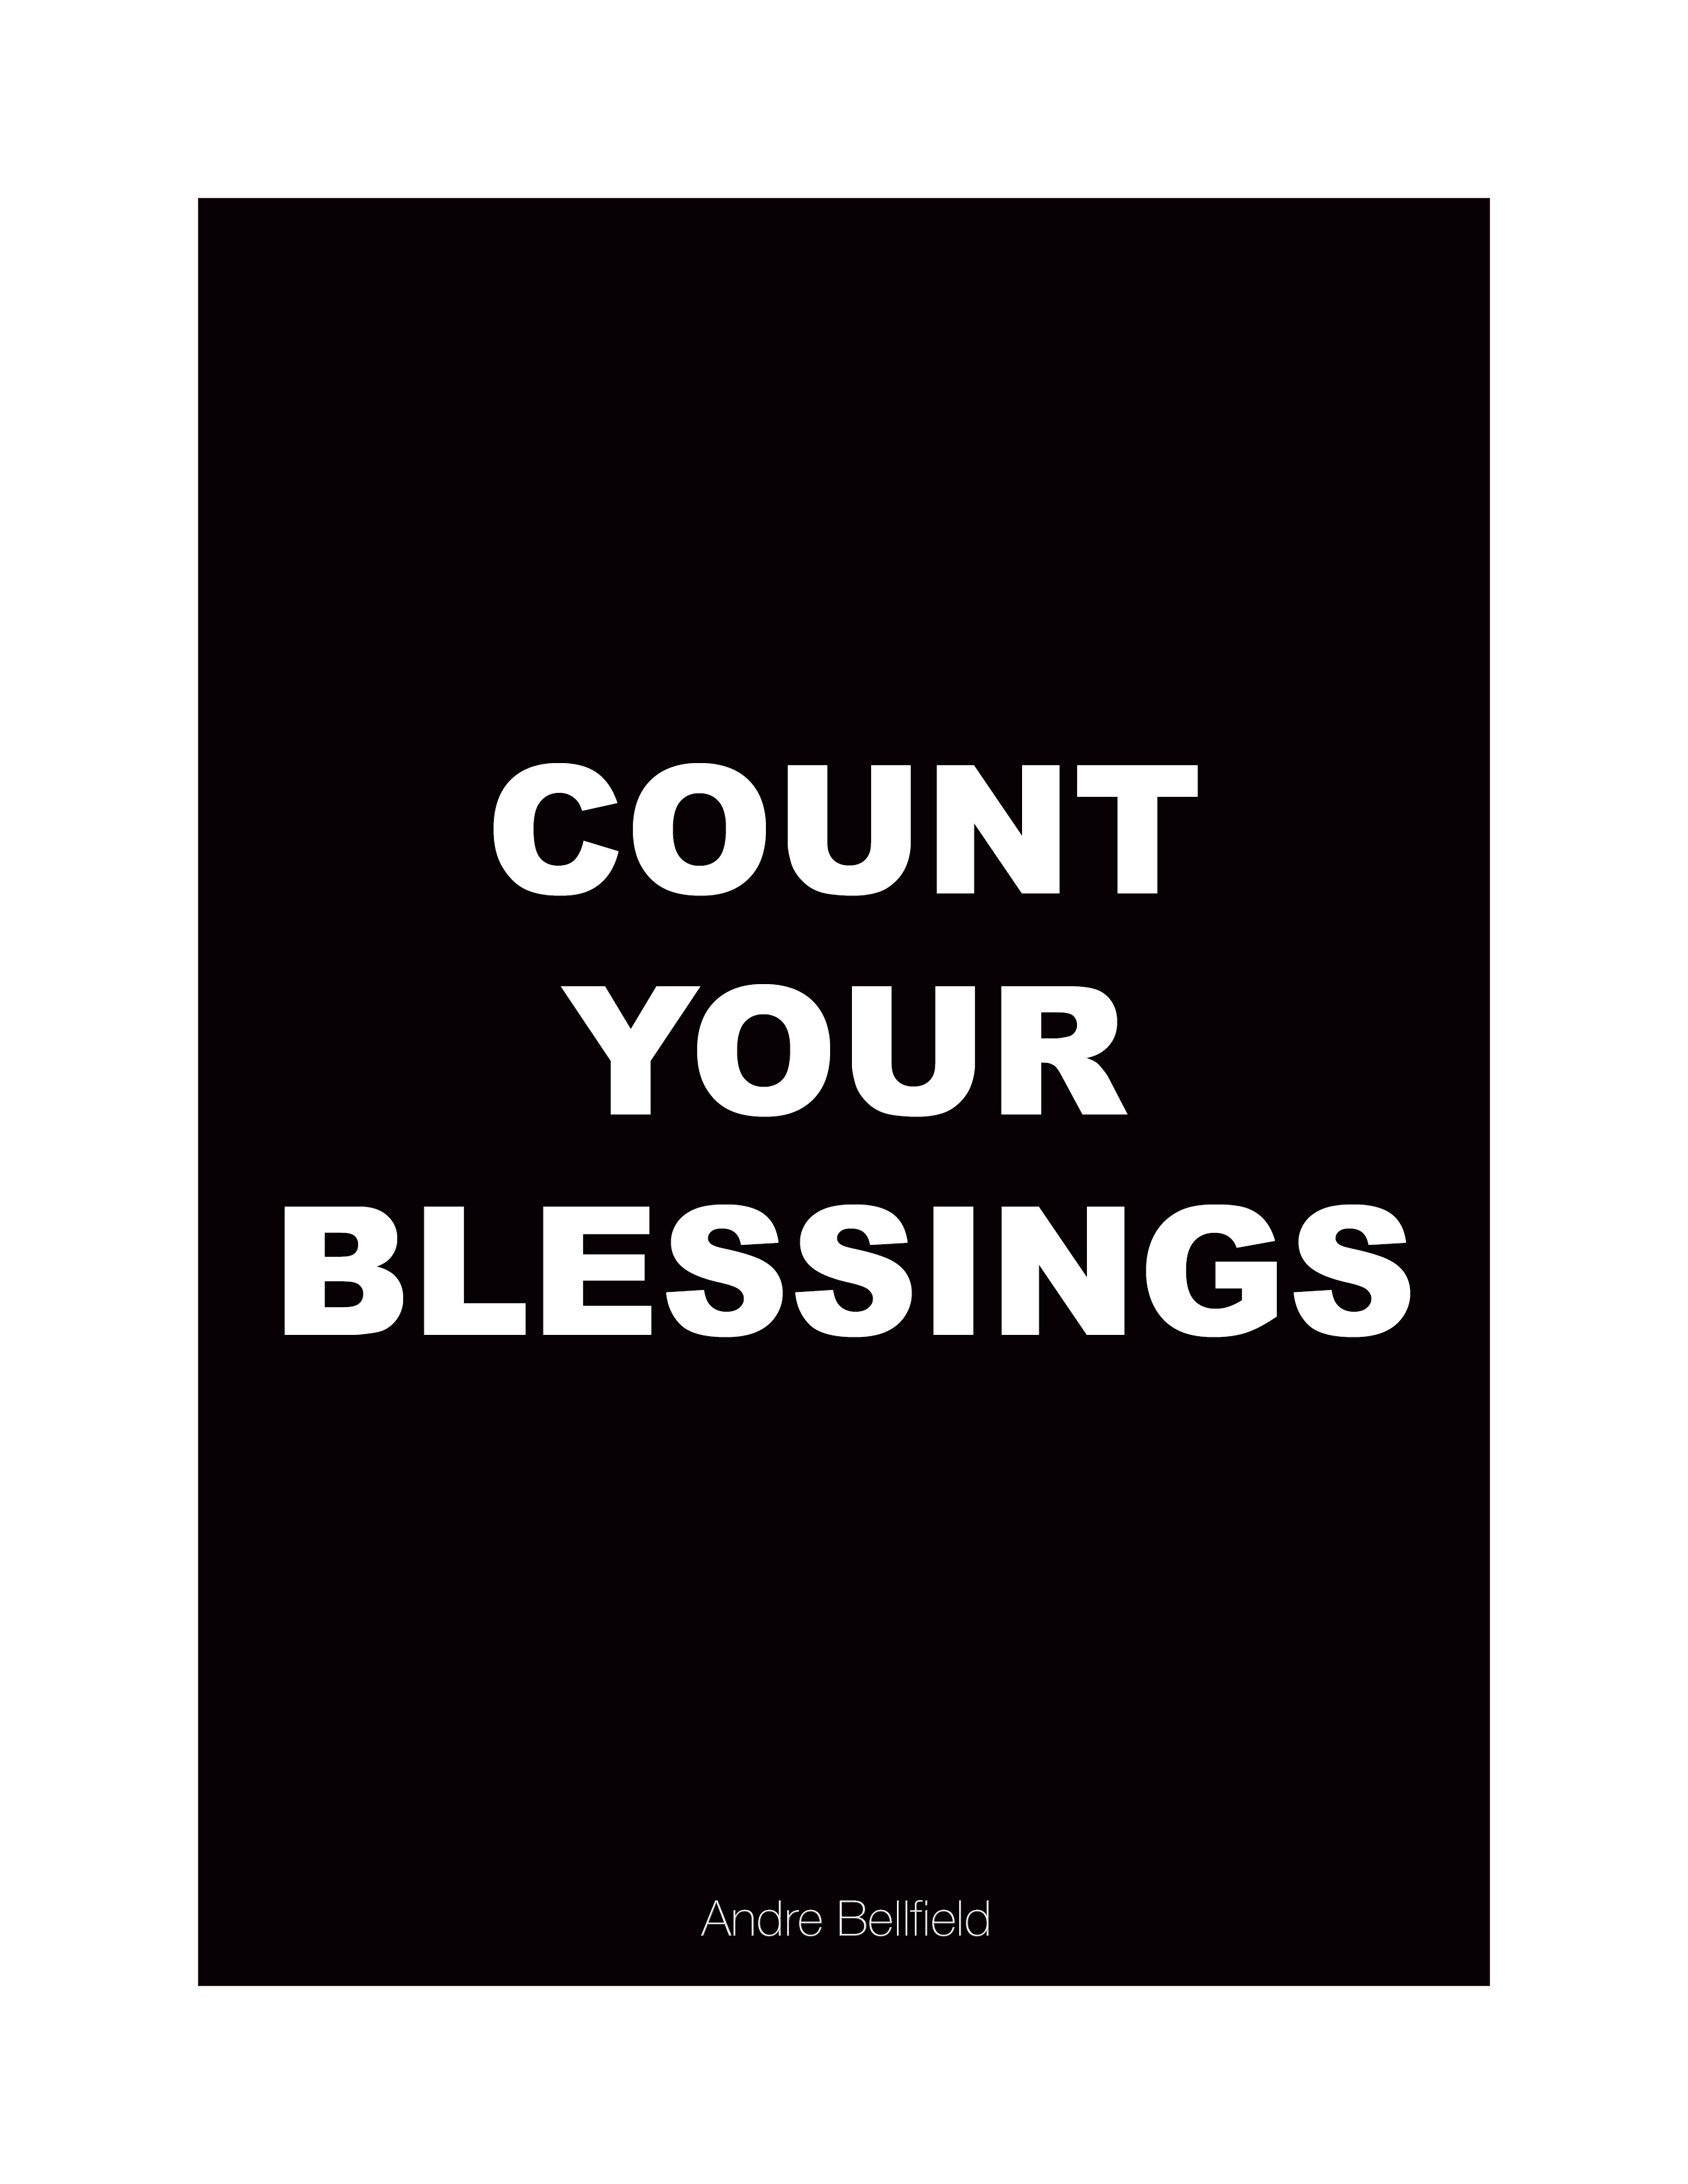 Count Your Blessings Inspirational Quotes Motivation Quotable Quotes Faith In God